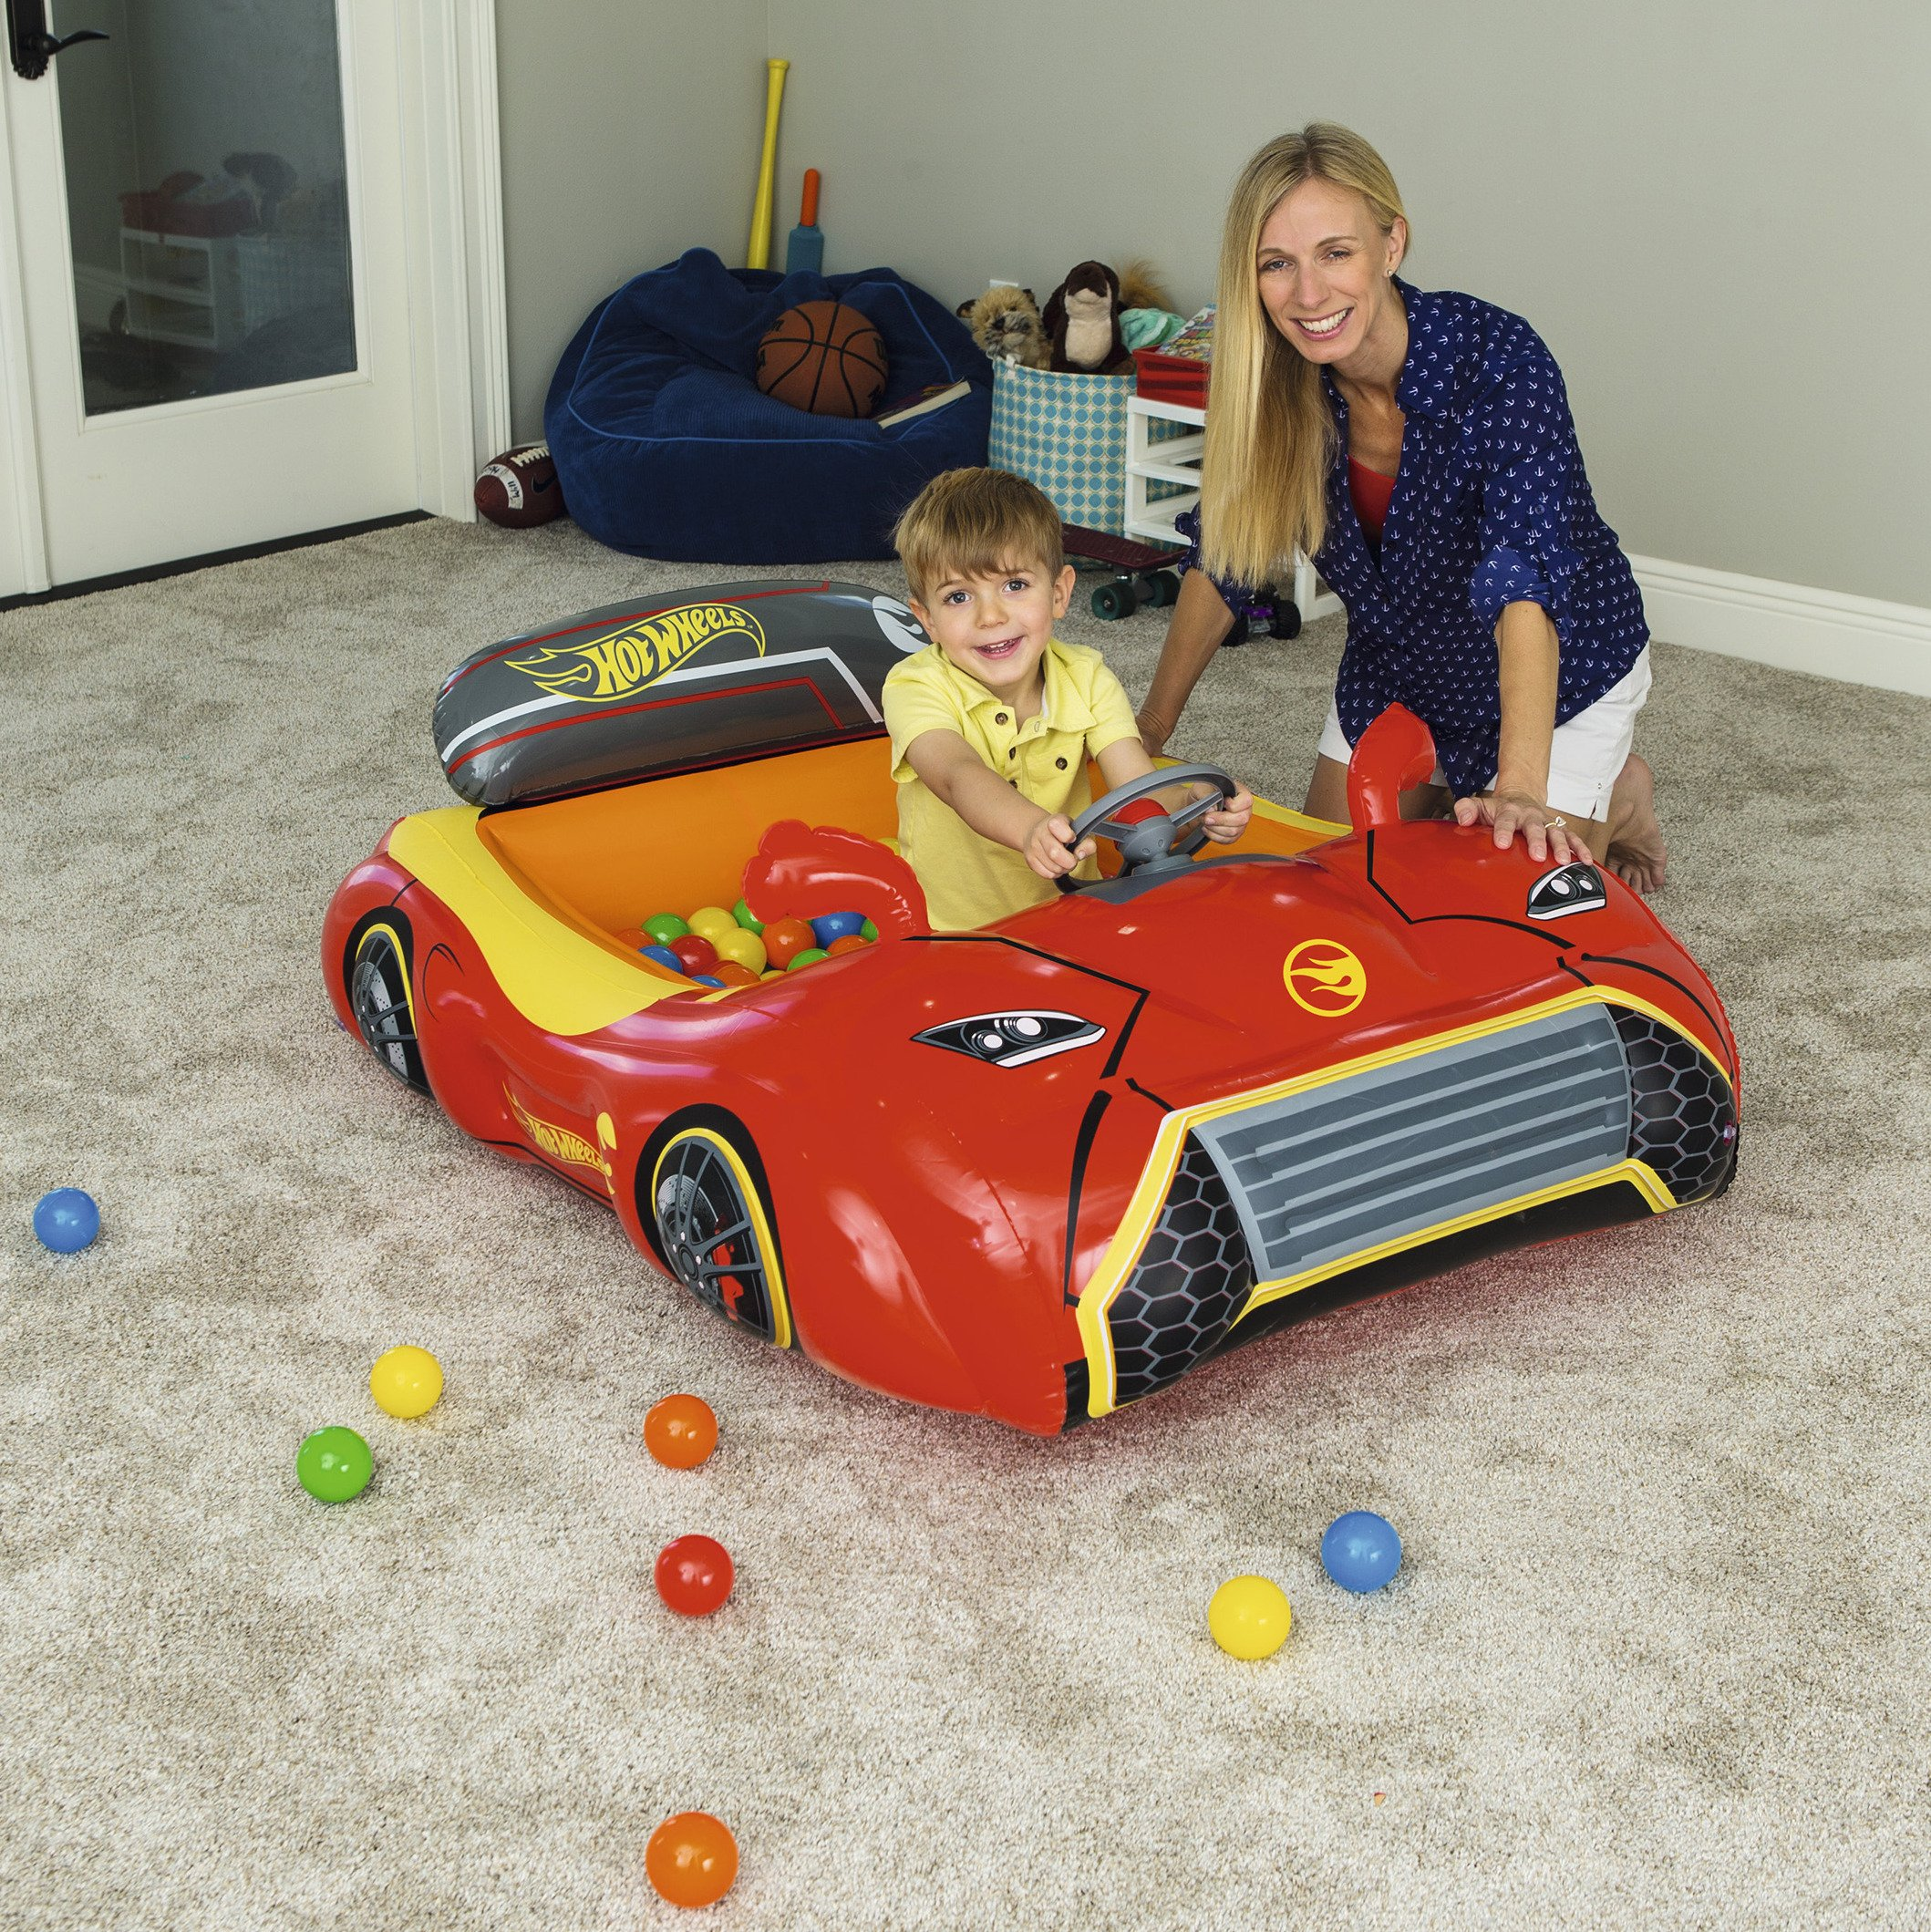 Bestway Hot Wheels Children's Inflatable Car Ball Pit, Includes 25 Balls by Bestway (Image #11)